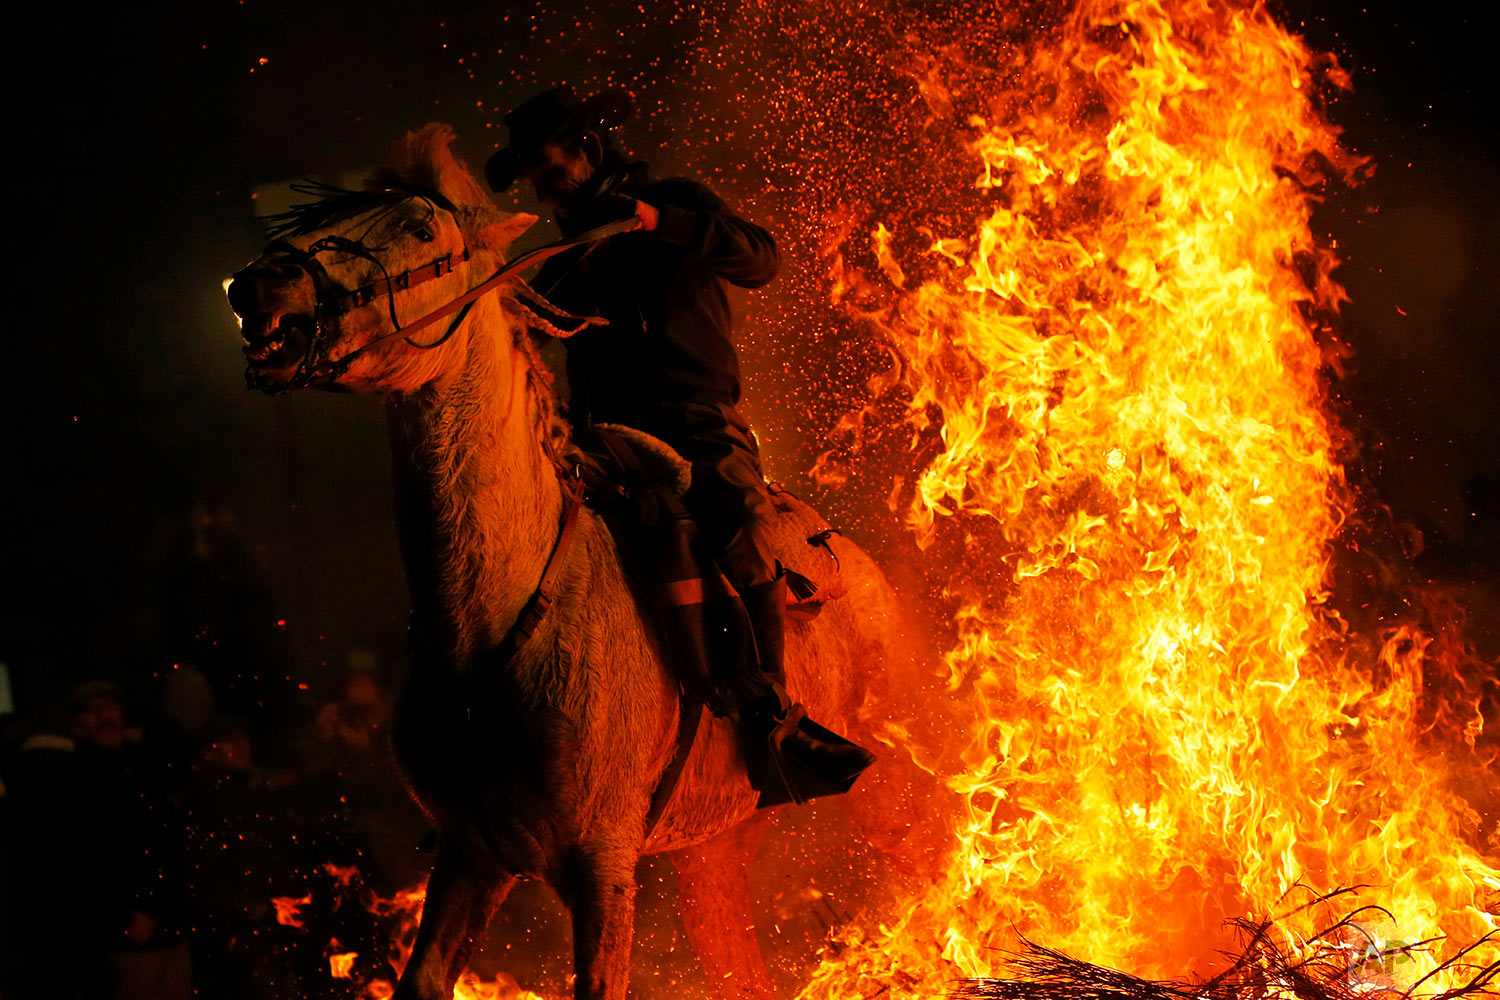 A man rides a horse through a bonfire as part of a ritual in honor of Saint Anthony the Abbot, the patron saint of animals, in San Bartolome de Pinares, Spain, Tuesday, Jan. 16, 2018. (AP Photo/Francisco Seco) |  See these photos on AP Images